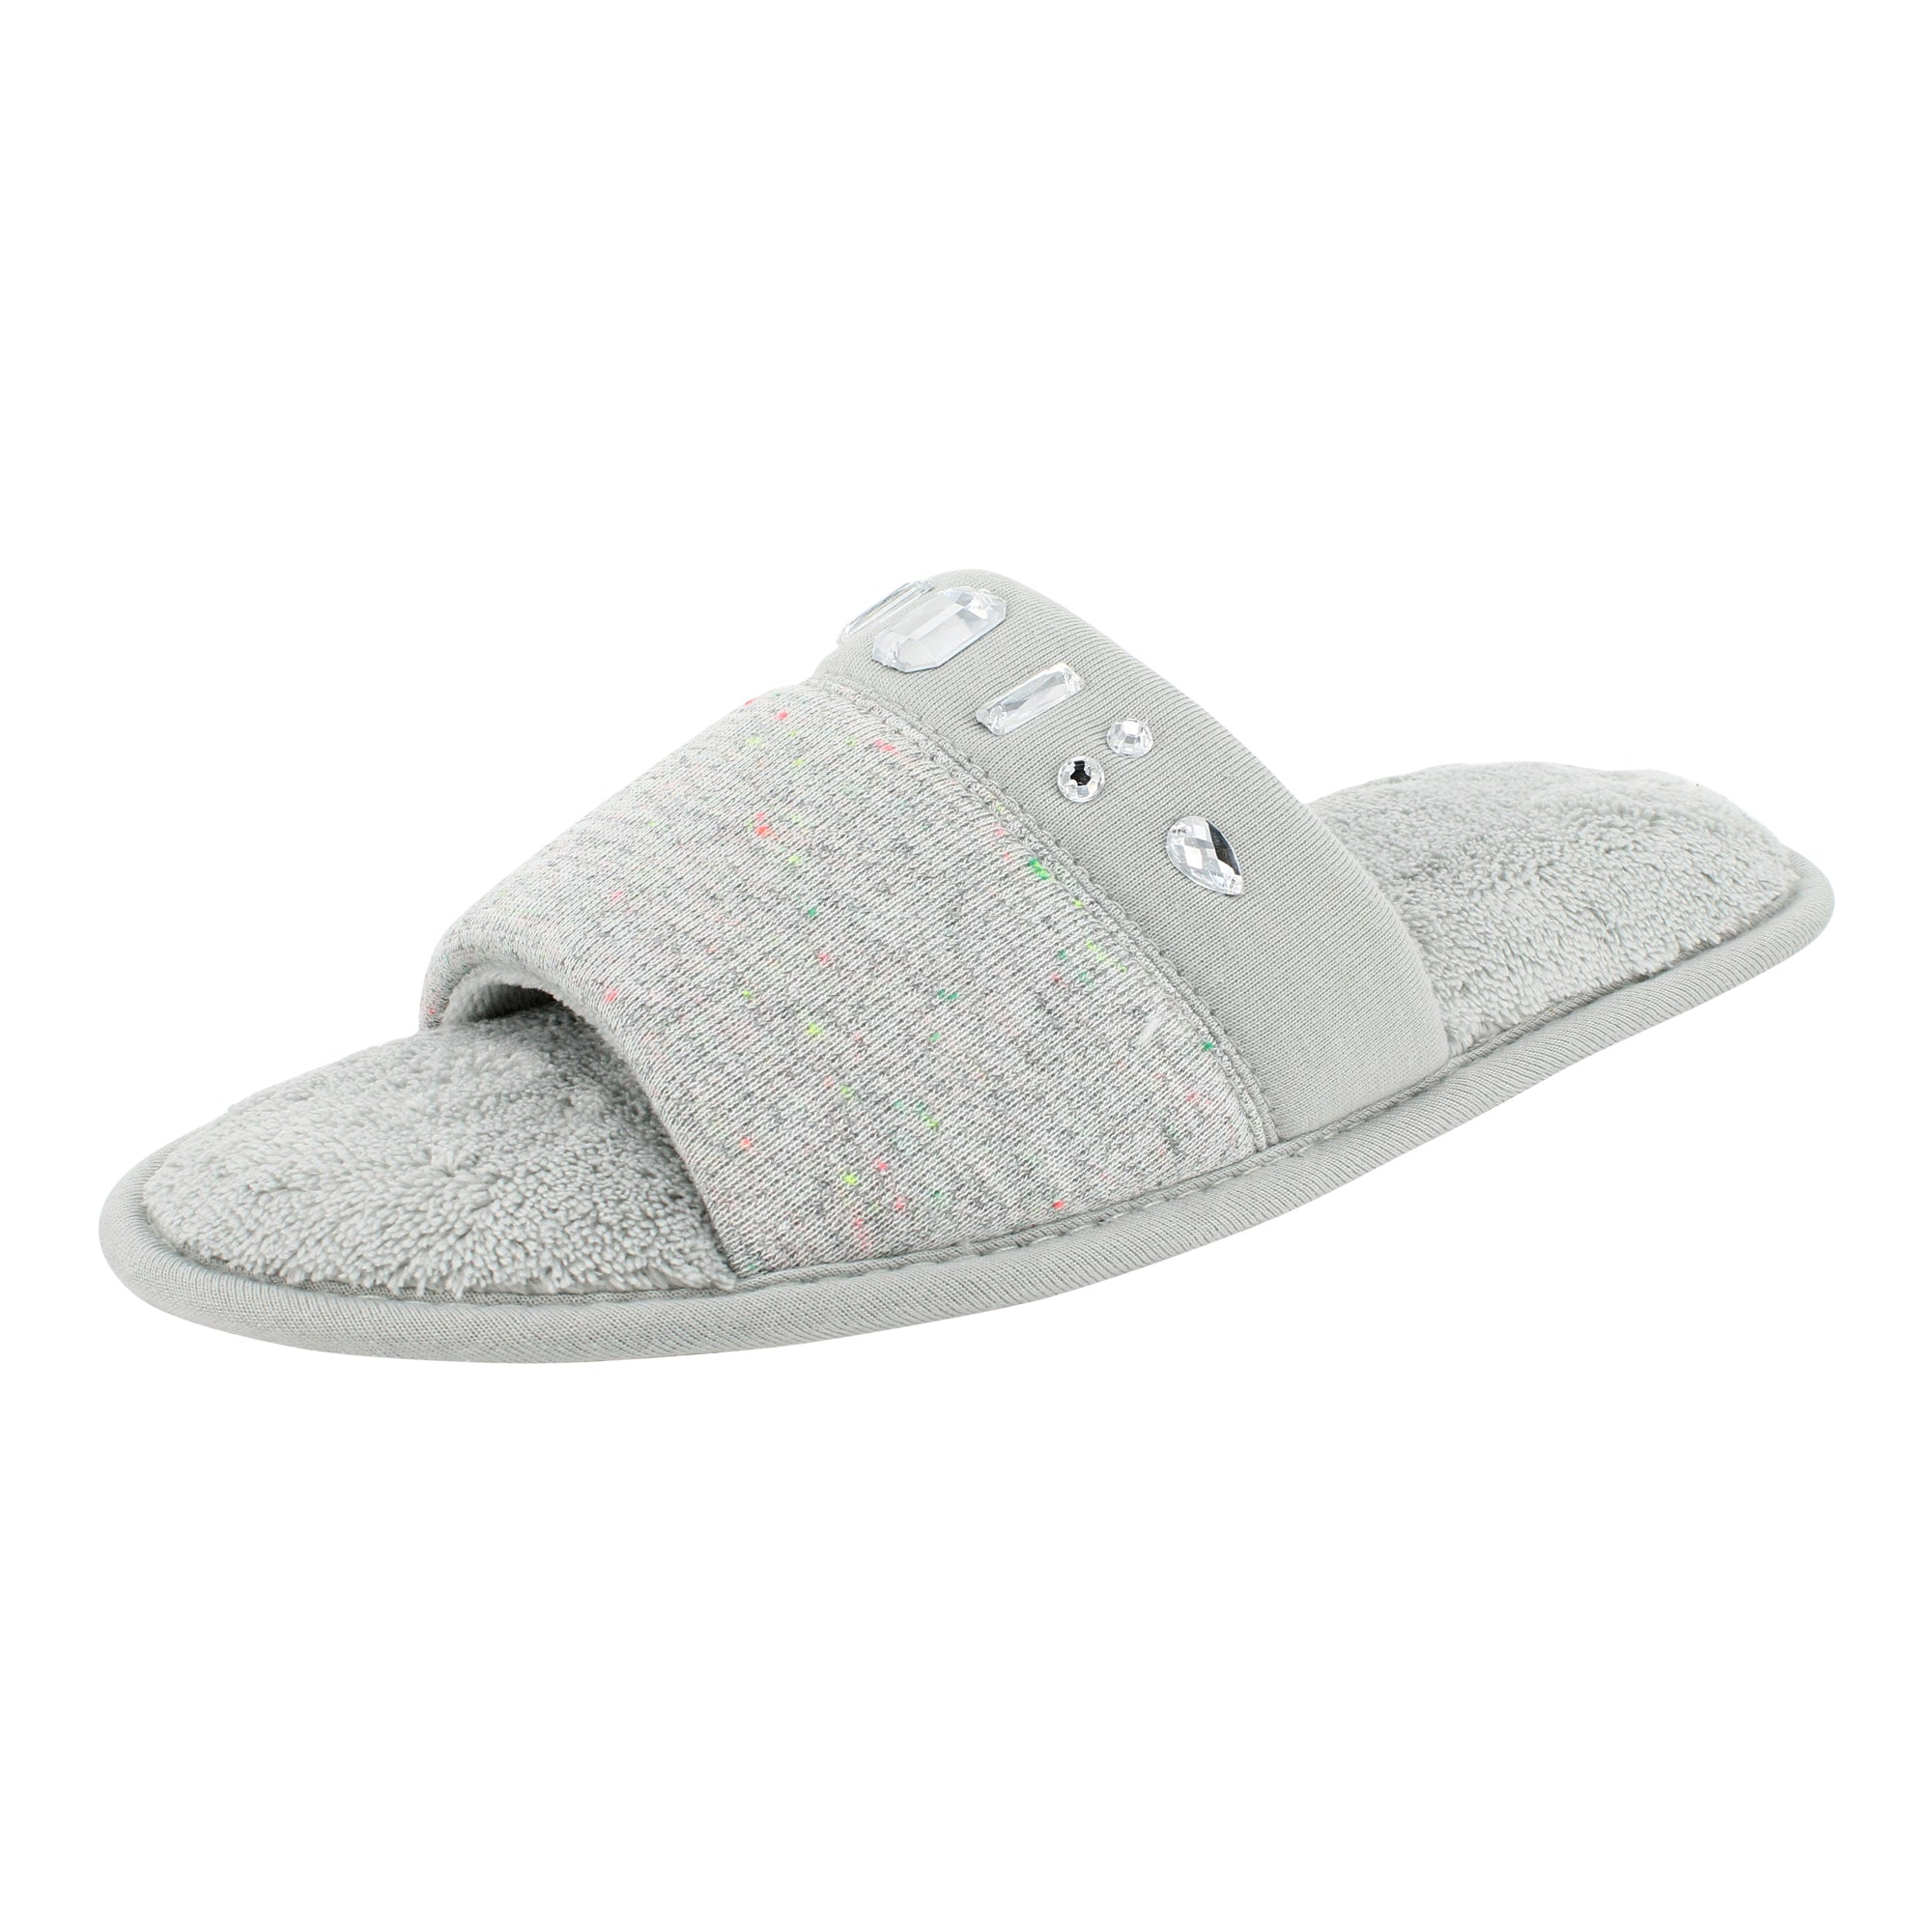 Isotoner Speckle Knit Open Toe Slide